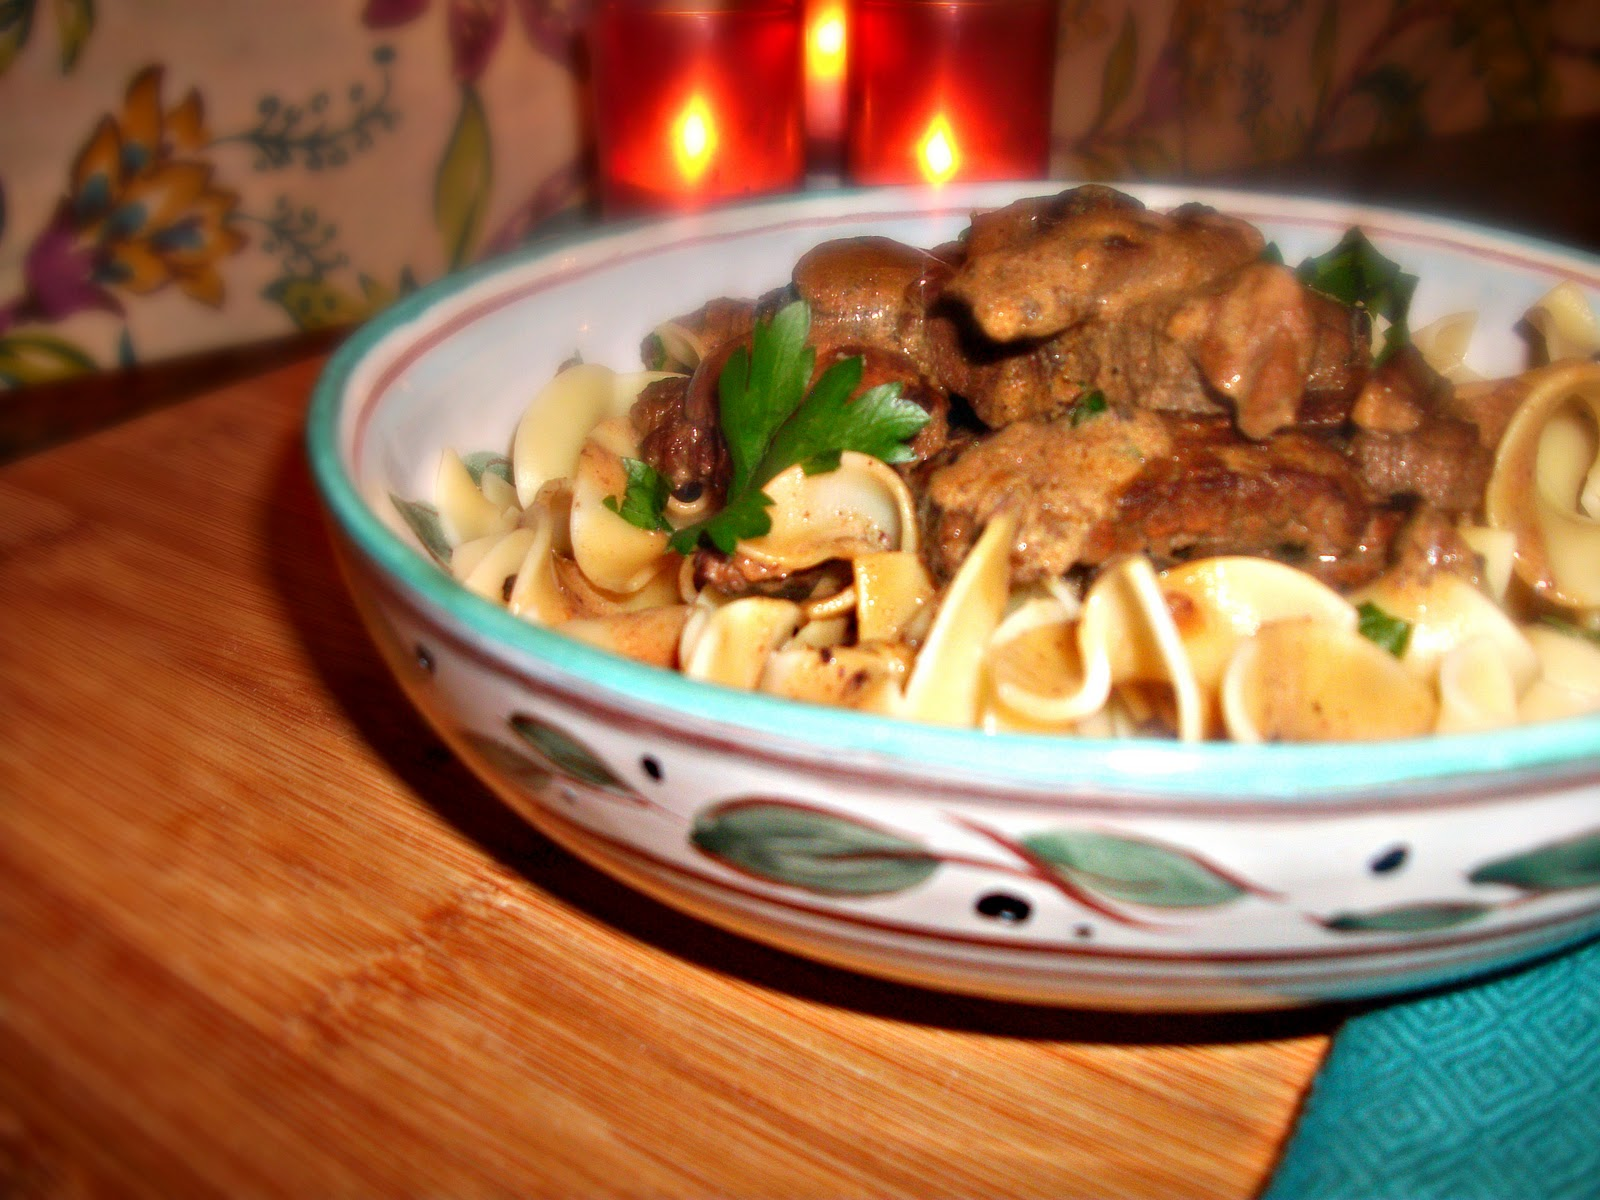 From Everyday to Gourmet: Beef Stroganoff Over Herbed Egg Noodles